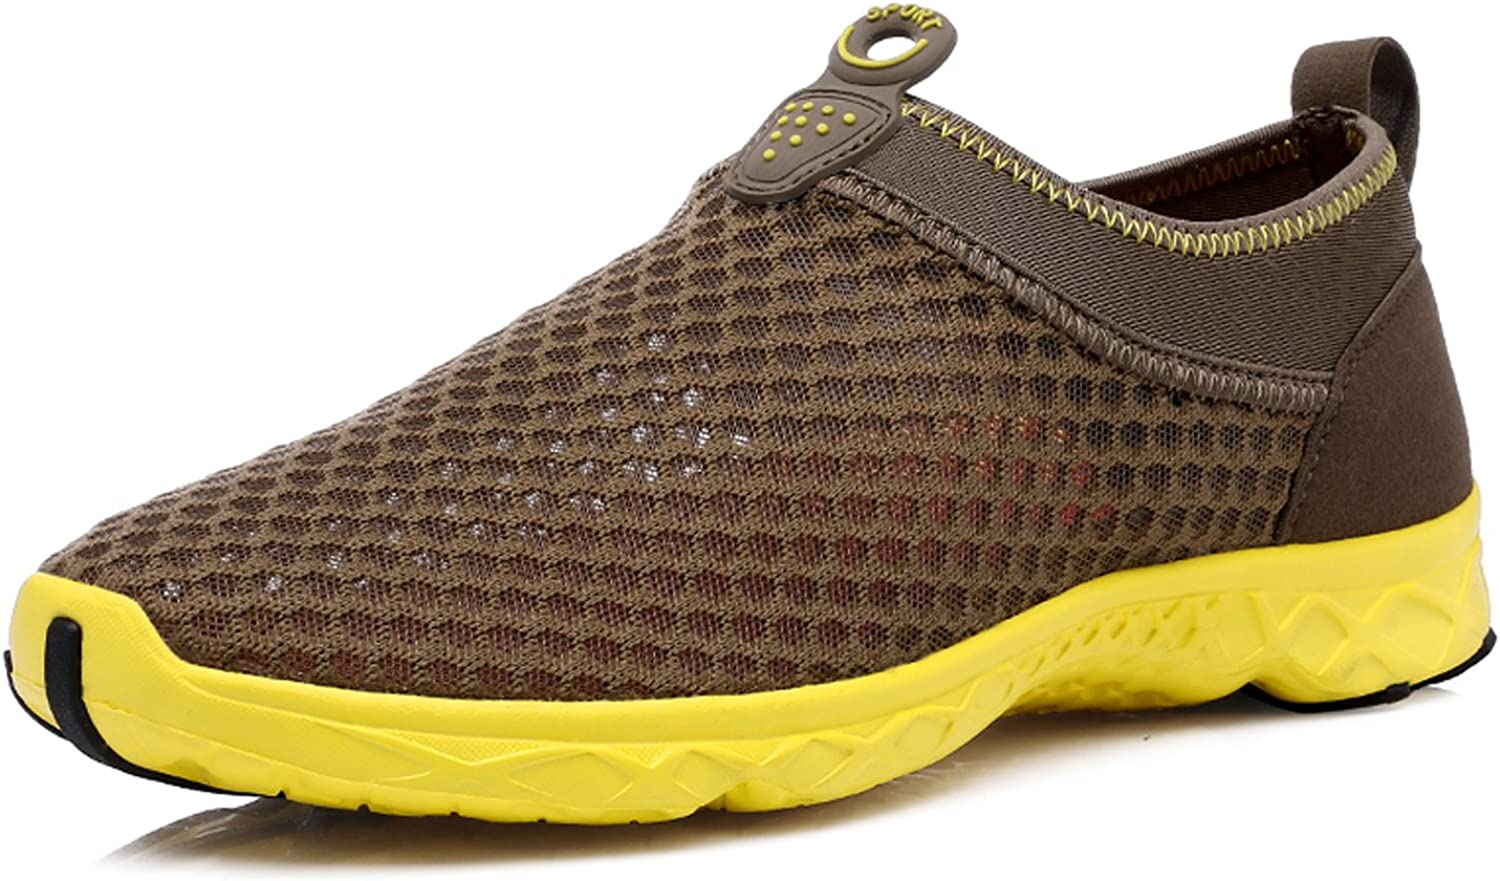 Women's Water shoes Beach sneakers Unisex Mesh Slip On Garden Park Driving Boating Sport shoes